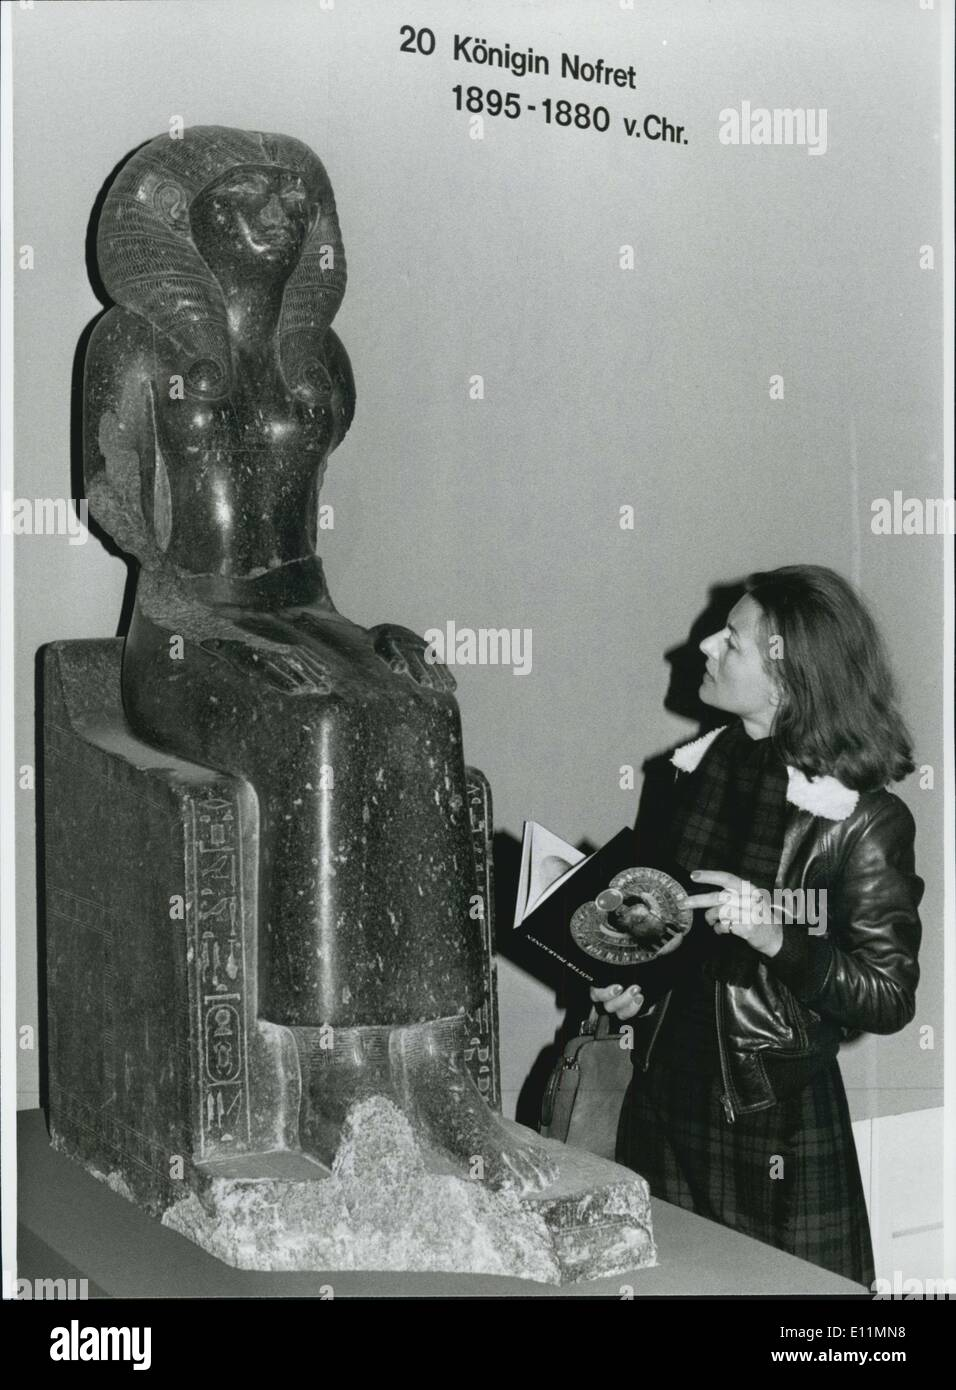 Nov. 25, 1978 - November 25th, 1978 Until February 4th 1979: Exhibition ''Gods - Pharons'' In Munich: ''Gods -Pharaons''... is the title of the exhibition which was opened at November 25th 1978 at the Munich ''Haus der Kunst'' after it decoyed about a half million visitors to the Villa Huegel in Essen/West Germany. It is the greatest exhibition from Egypt which ever left this land. The 175 artworks from the Egypt Museum at Kairo and form the Greece-Roman Museum at Alexandria give a unbroken view over the Egypt art. Photo shows: Sitting sculpture of Queen Nofret. - Stock Image